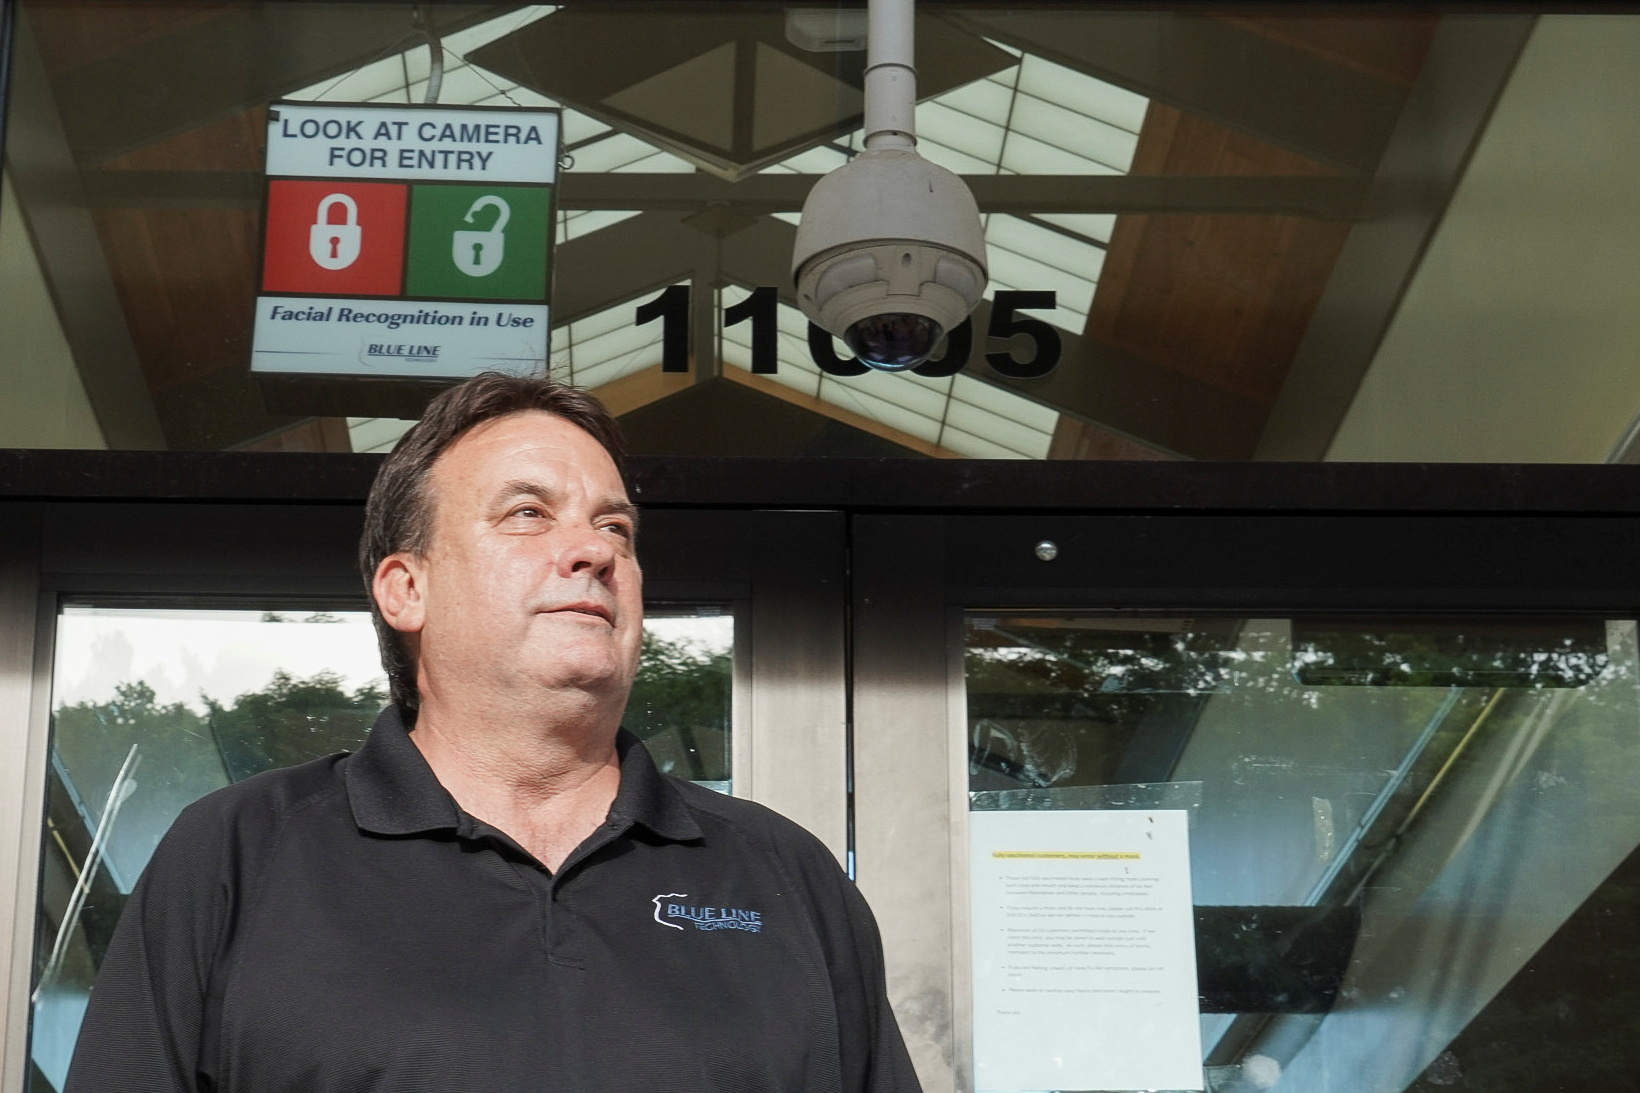 Co-Founder Thomas Sawyer stands in front of his facial recognition system from the company Blue Line Technology, at a convenience store in St. Louis, Missouri, U.S., June 14, 2021. Picture taken June 14, 2021. REUTERS/Lawrence Bryant